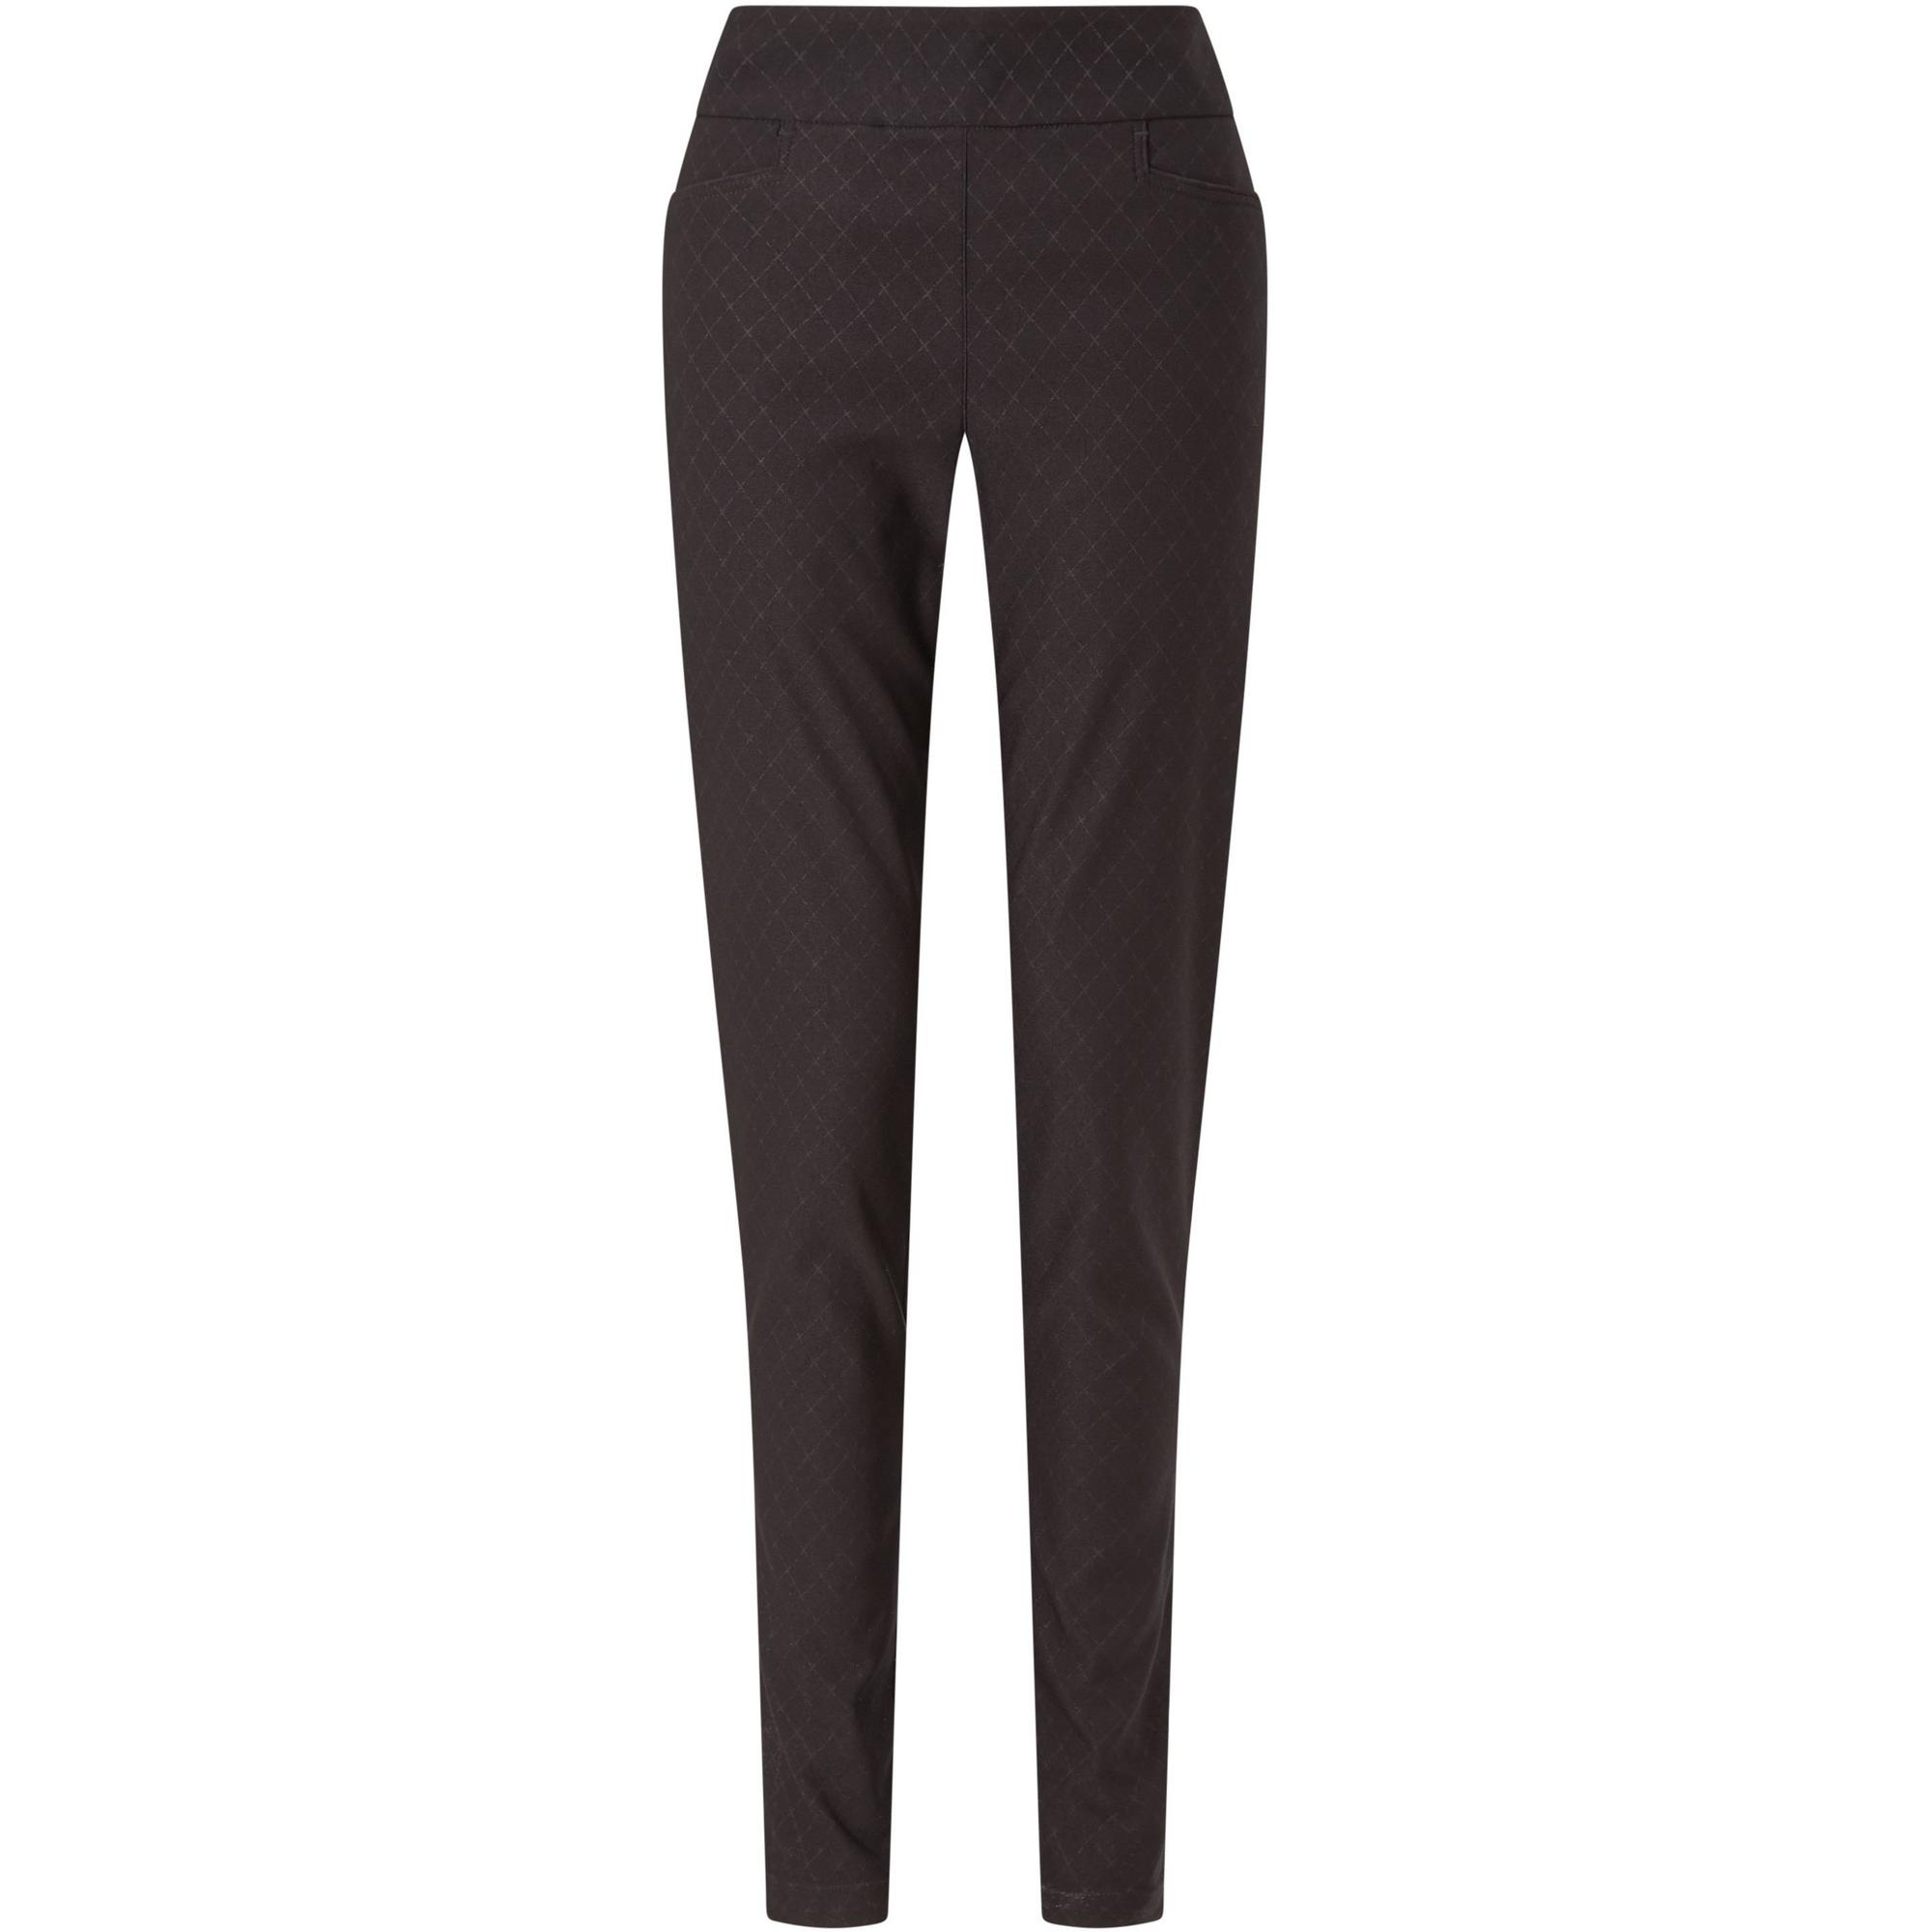 Women's Stretch Embossed Argyle Print Pull-On Pant